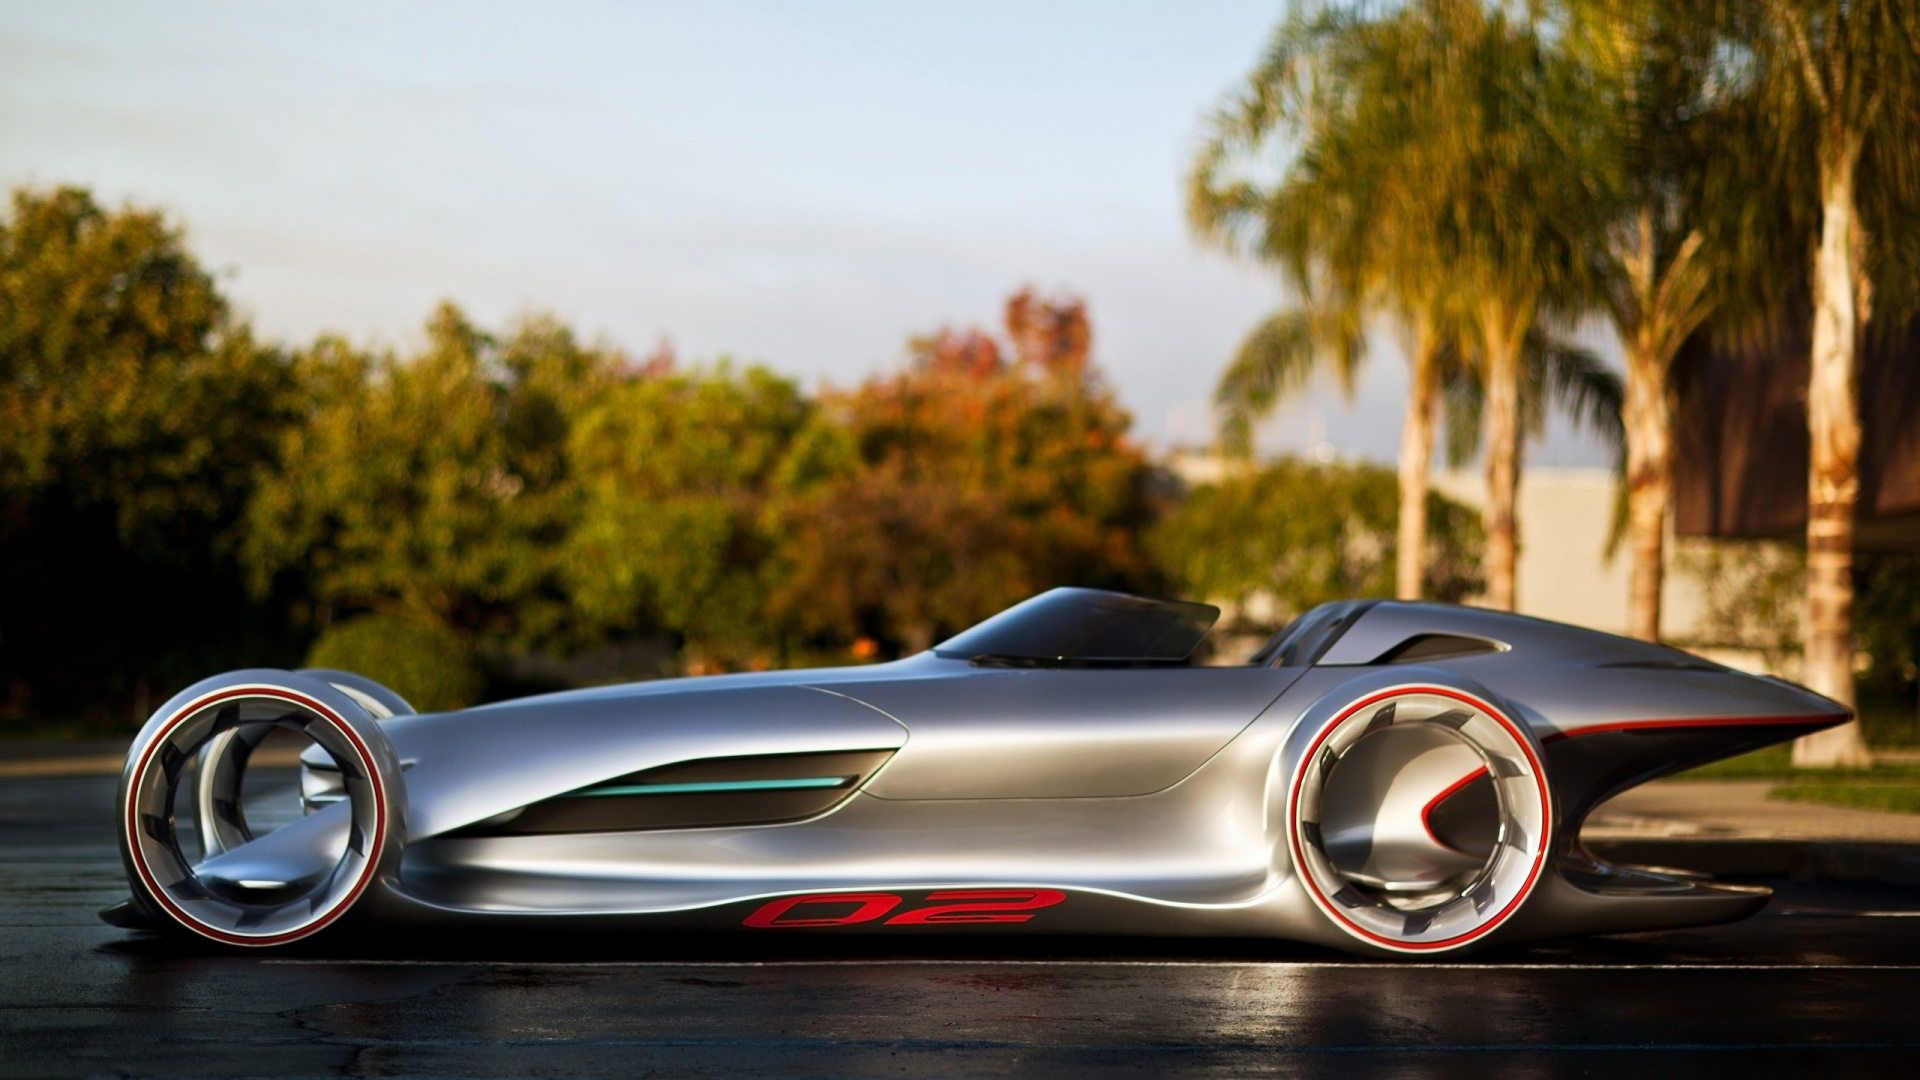 Mercedes Benz Silver Arrow Concept Most Expensive Car 1920 1080 Wallpaper Concept Cars Futuristic Cars Expensive Cars